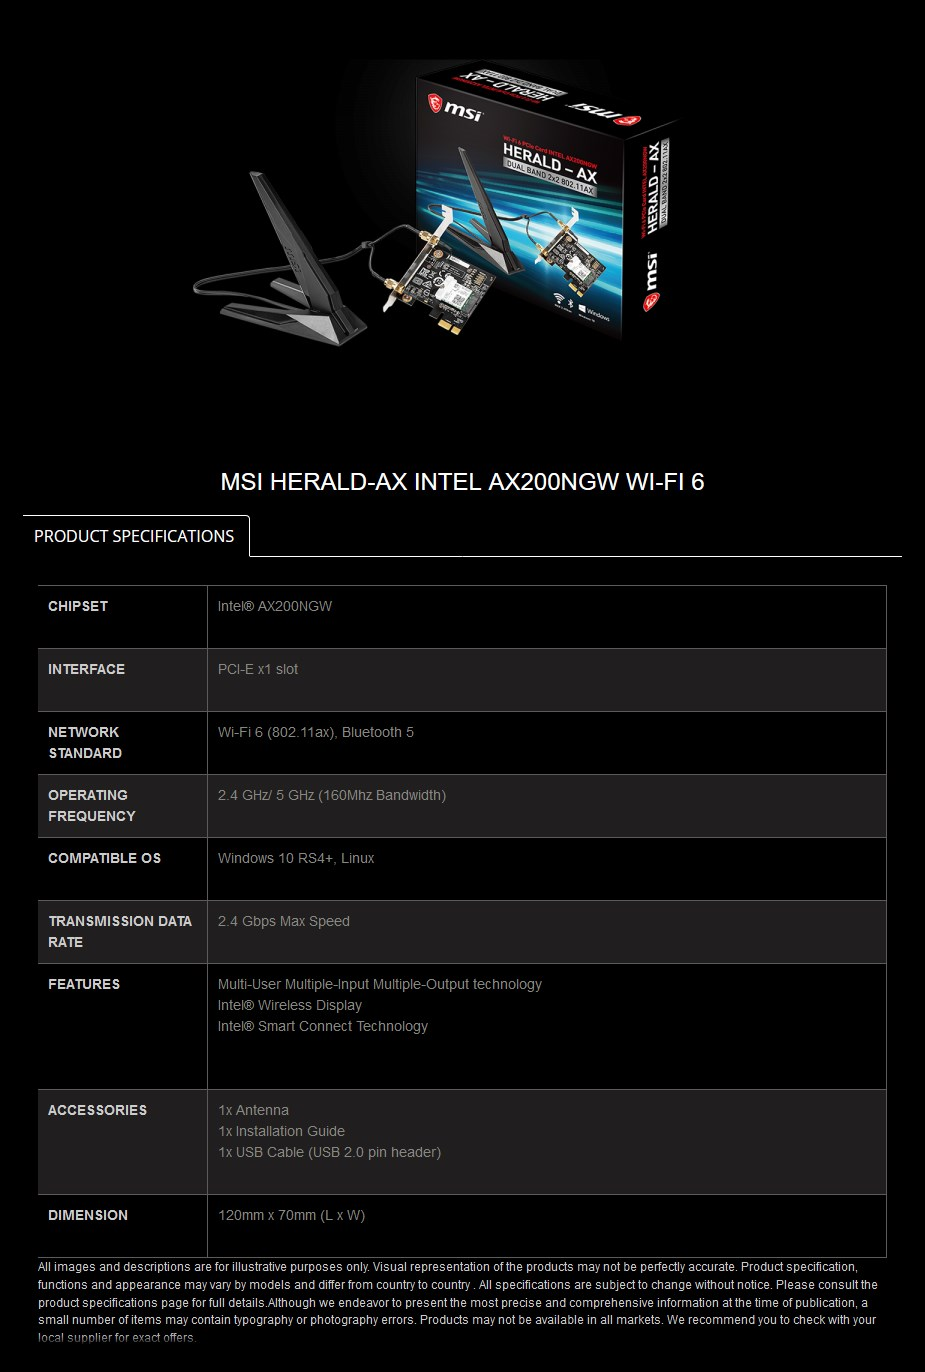 MSI Herald-AX Dual Band 802.11ax Wireless PCIe Adapter Card - Overview 2